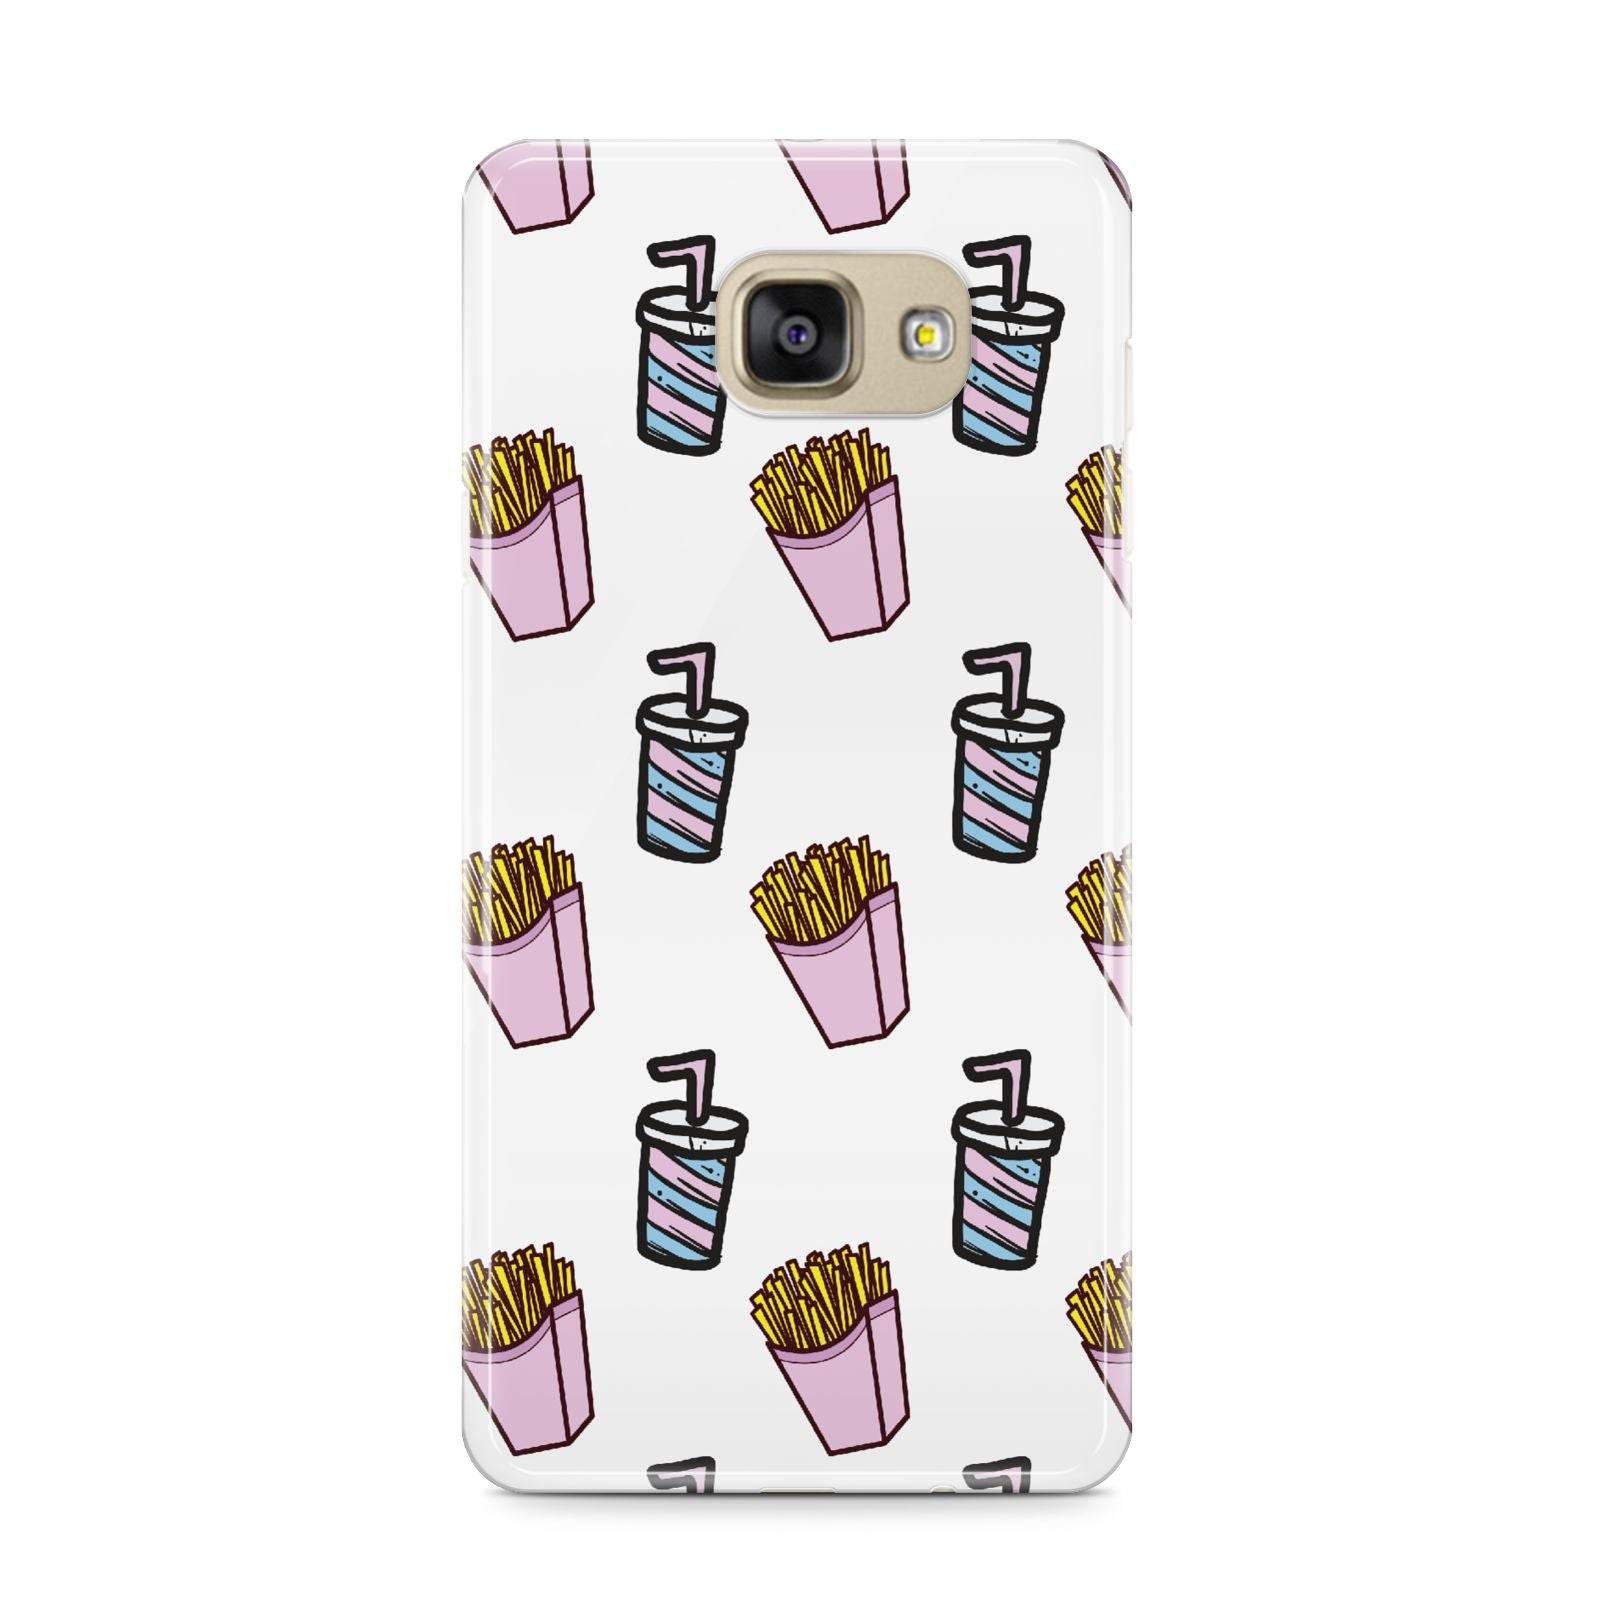 Fries Shake Fast Food Samsung Galaxy A9 2016 Case on gold phone